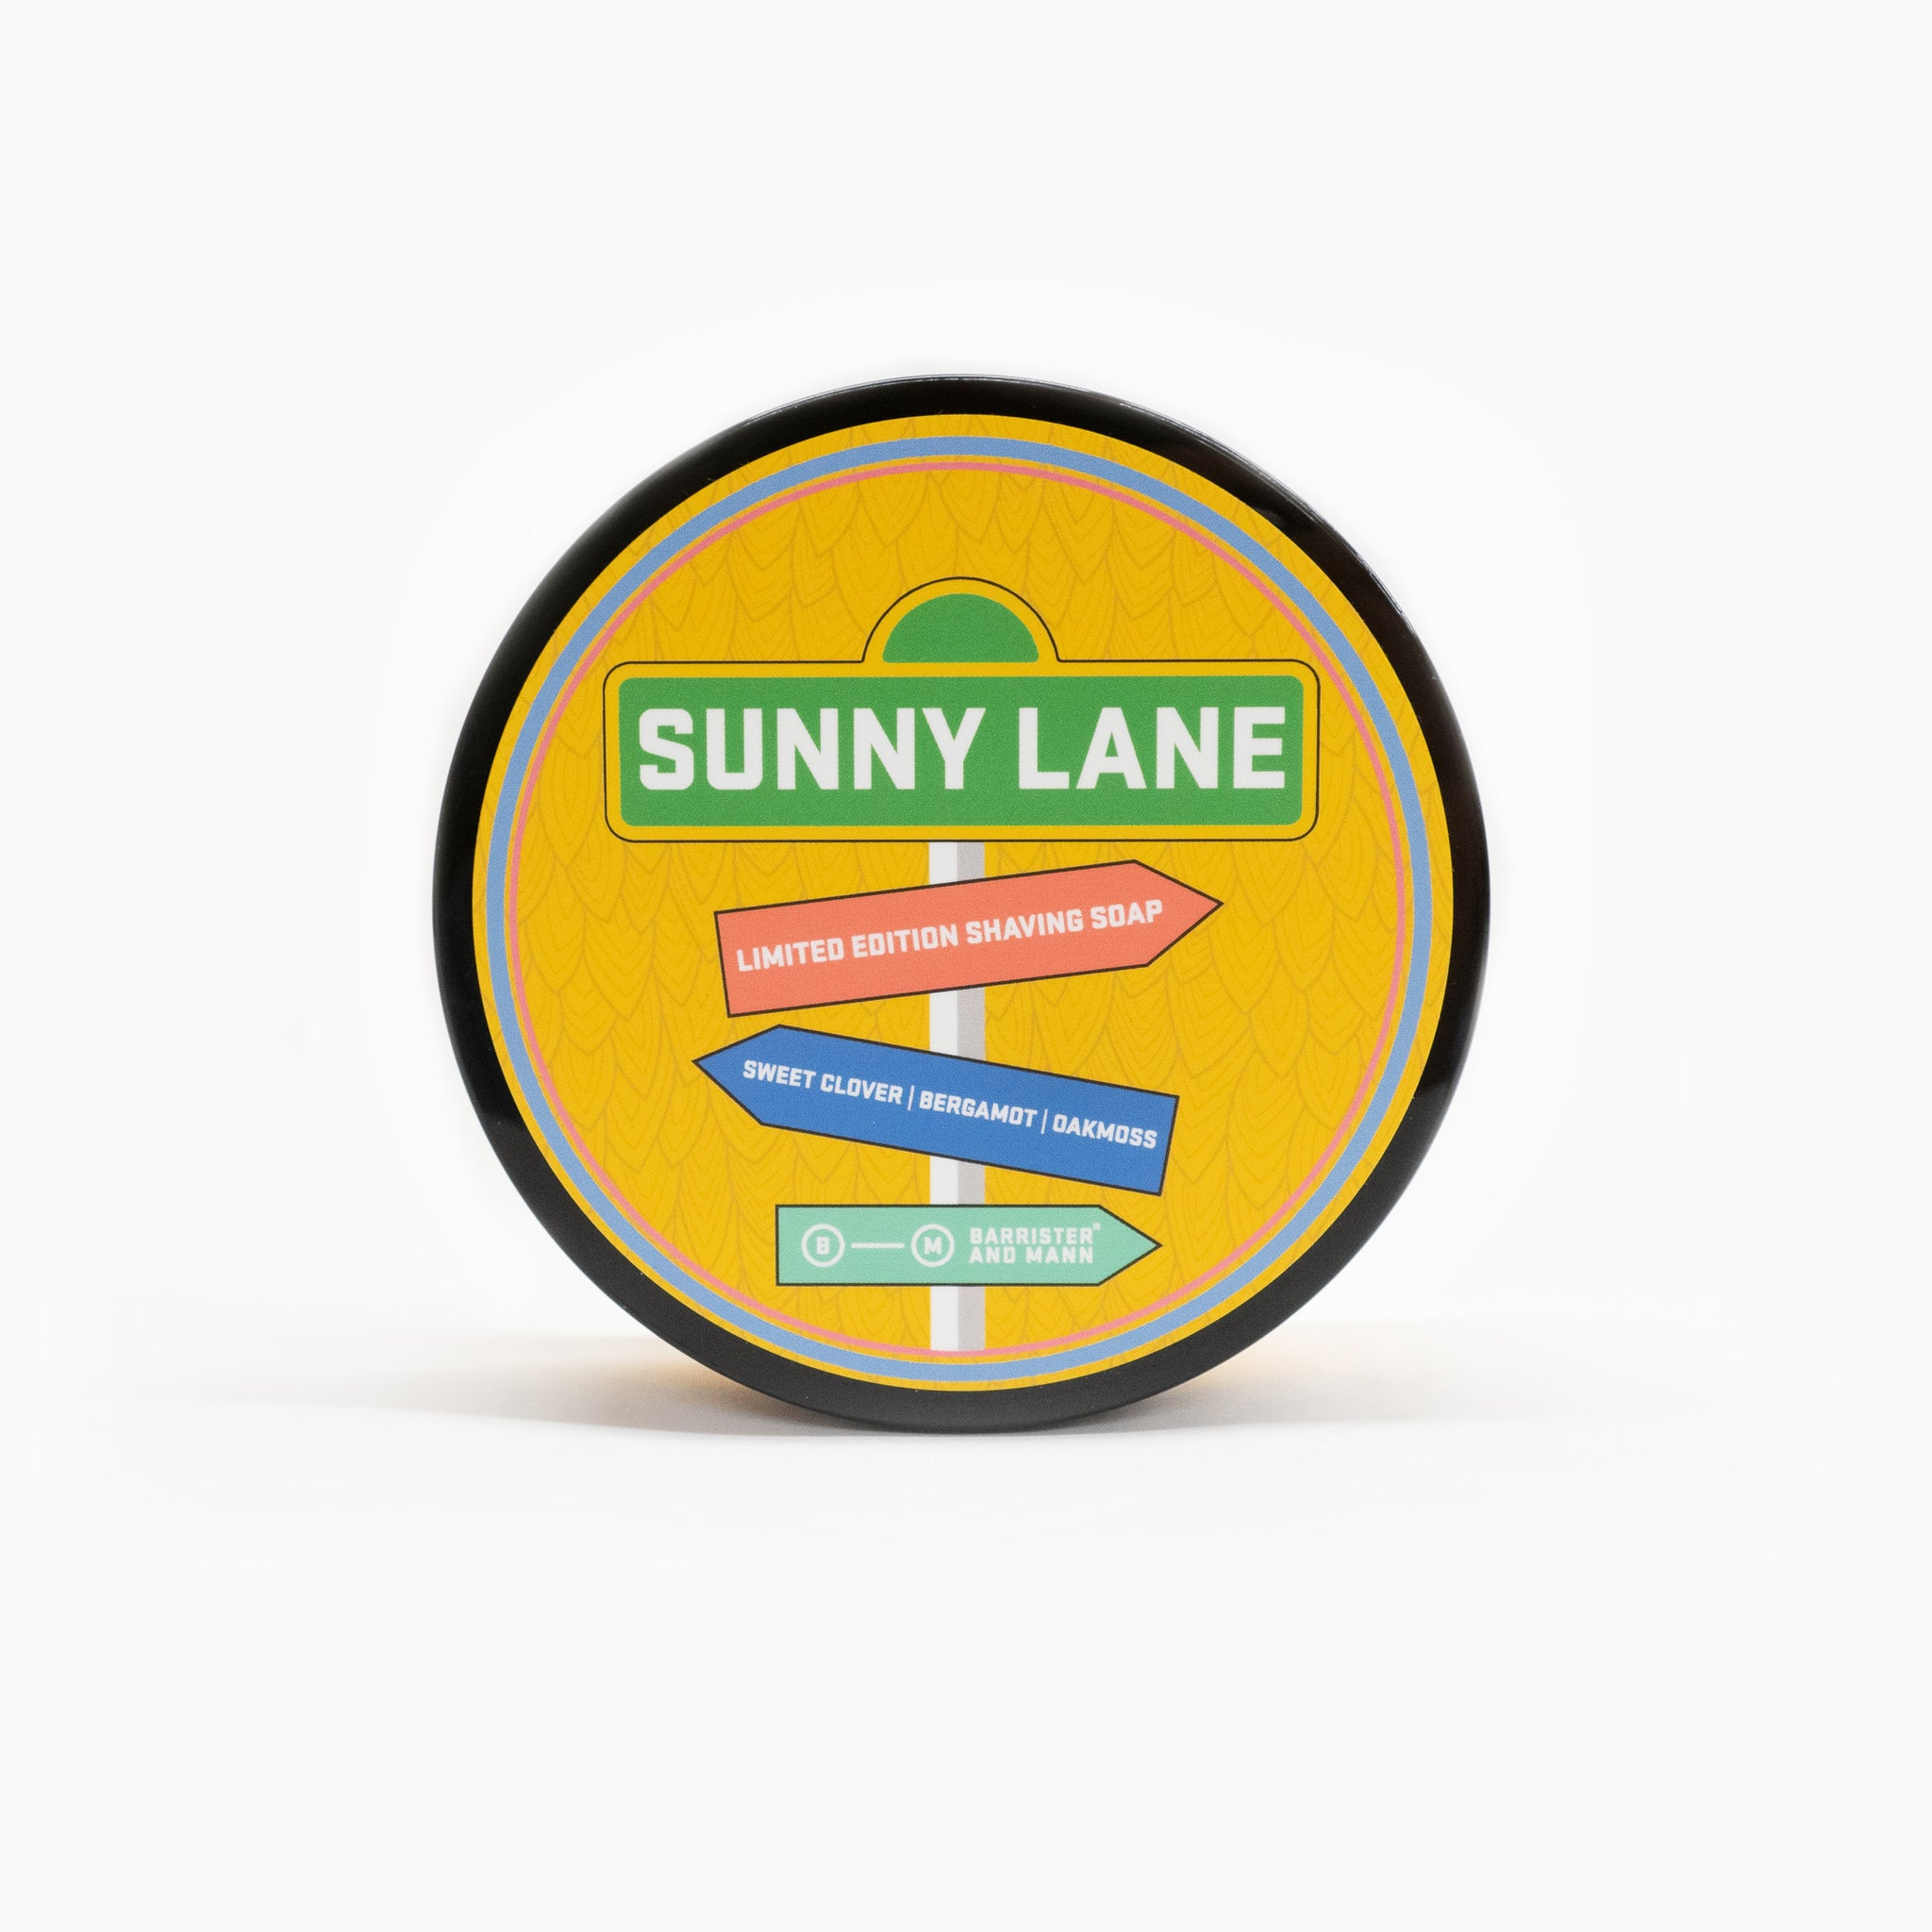 Barrister and Mann 'Sunny Lane' Luxury Shaving Soap